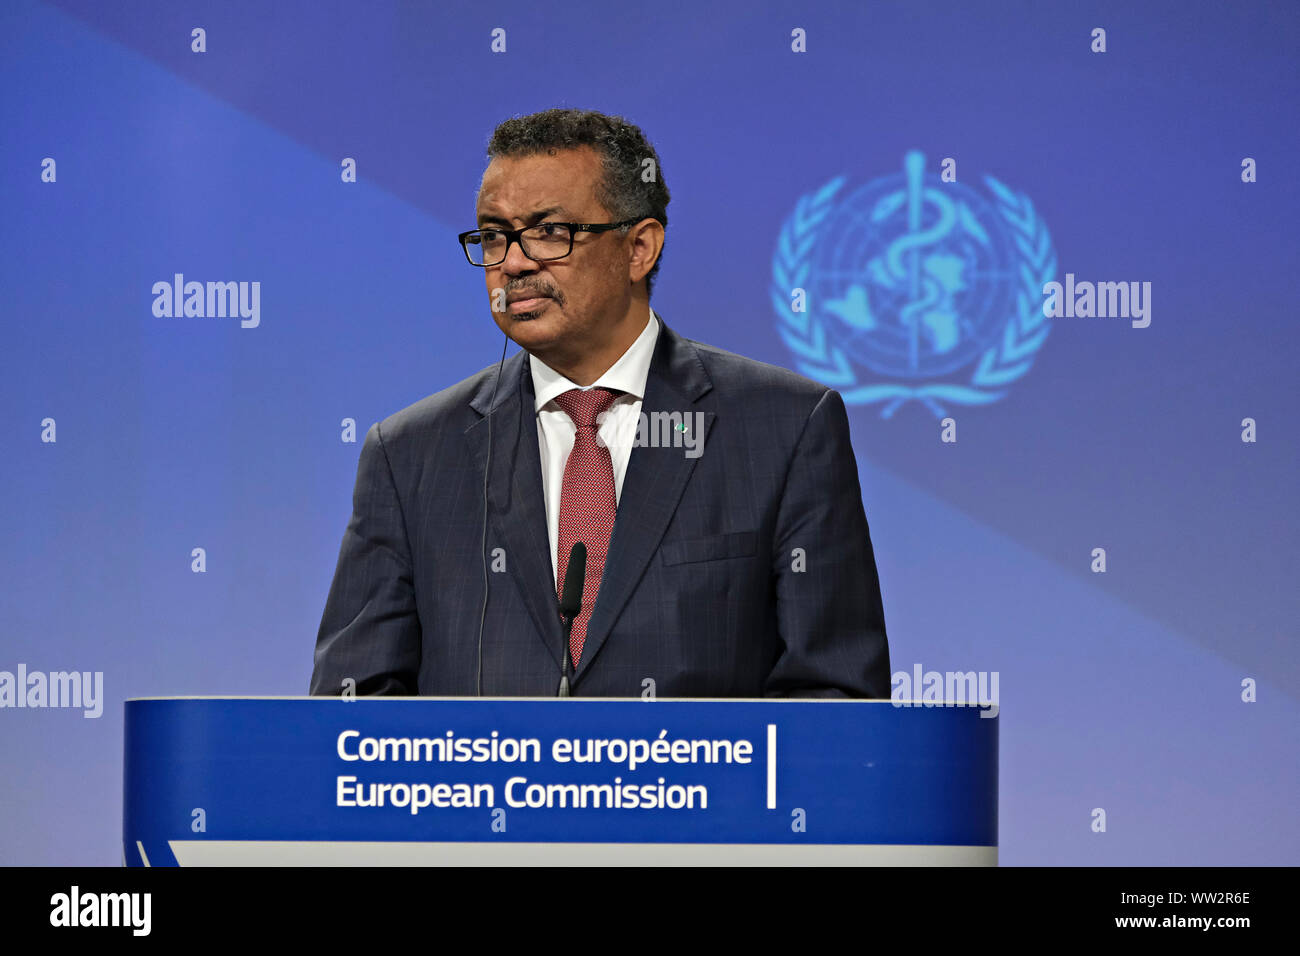 Brussels, Belgium. 12th Sep. 2019. Press conference by Commissioner Vytenis ANDRIUKAITIS and the Director-General of the World Health Organization Tedros ADHANOM GHEBREYESUS, on occasion of the Global Vaccination Summit. Alexandros Michailidis/Alamy Live News Stock Photo